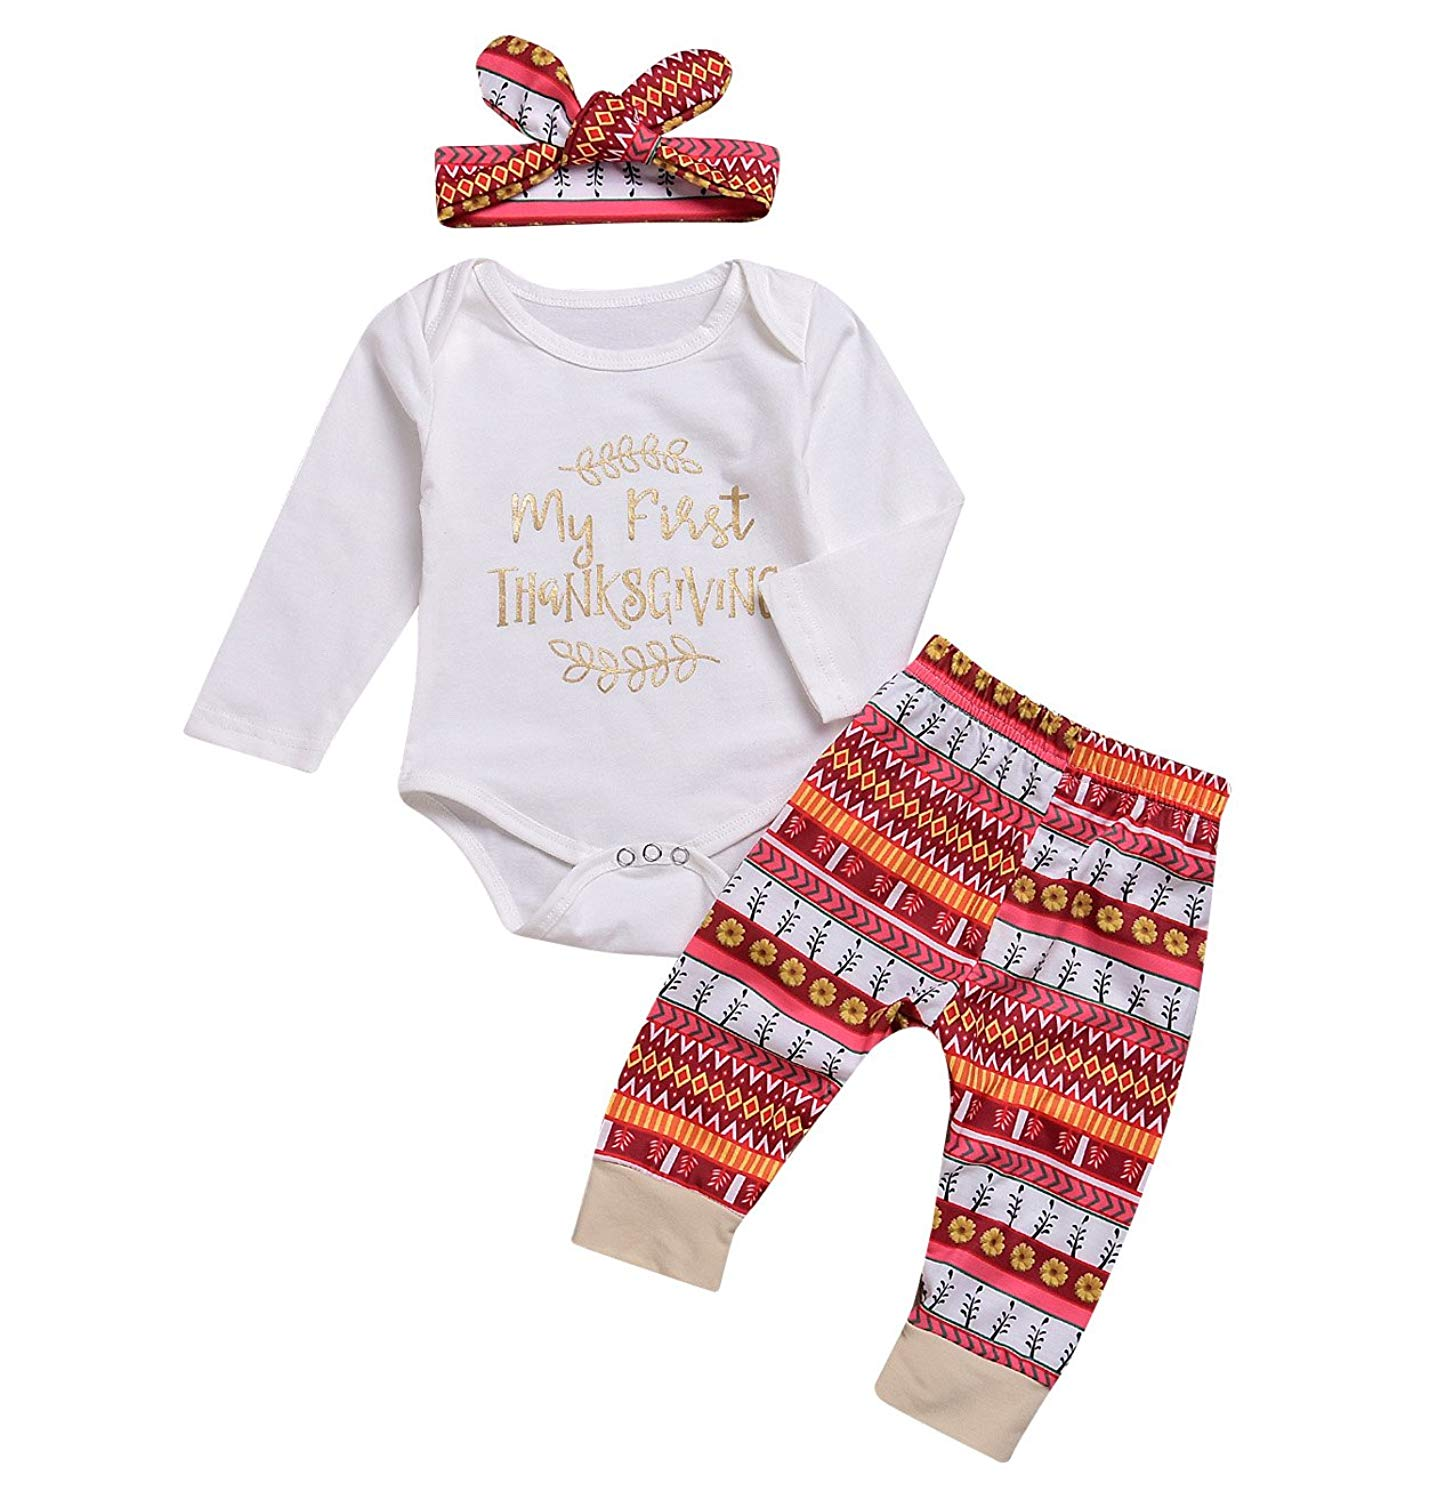 4707bae1e Get Quotations · Younger Tree Thanksgiving Outfit Newborn Infant Baby Boy  Girl Letter Print Long Sleeve Romper Pant Headband